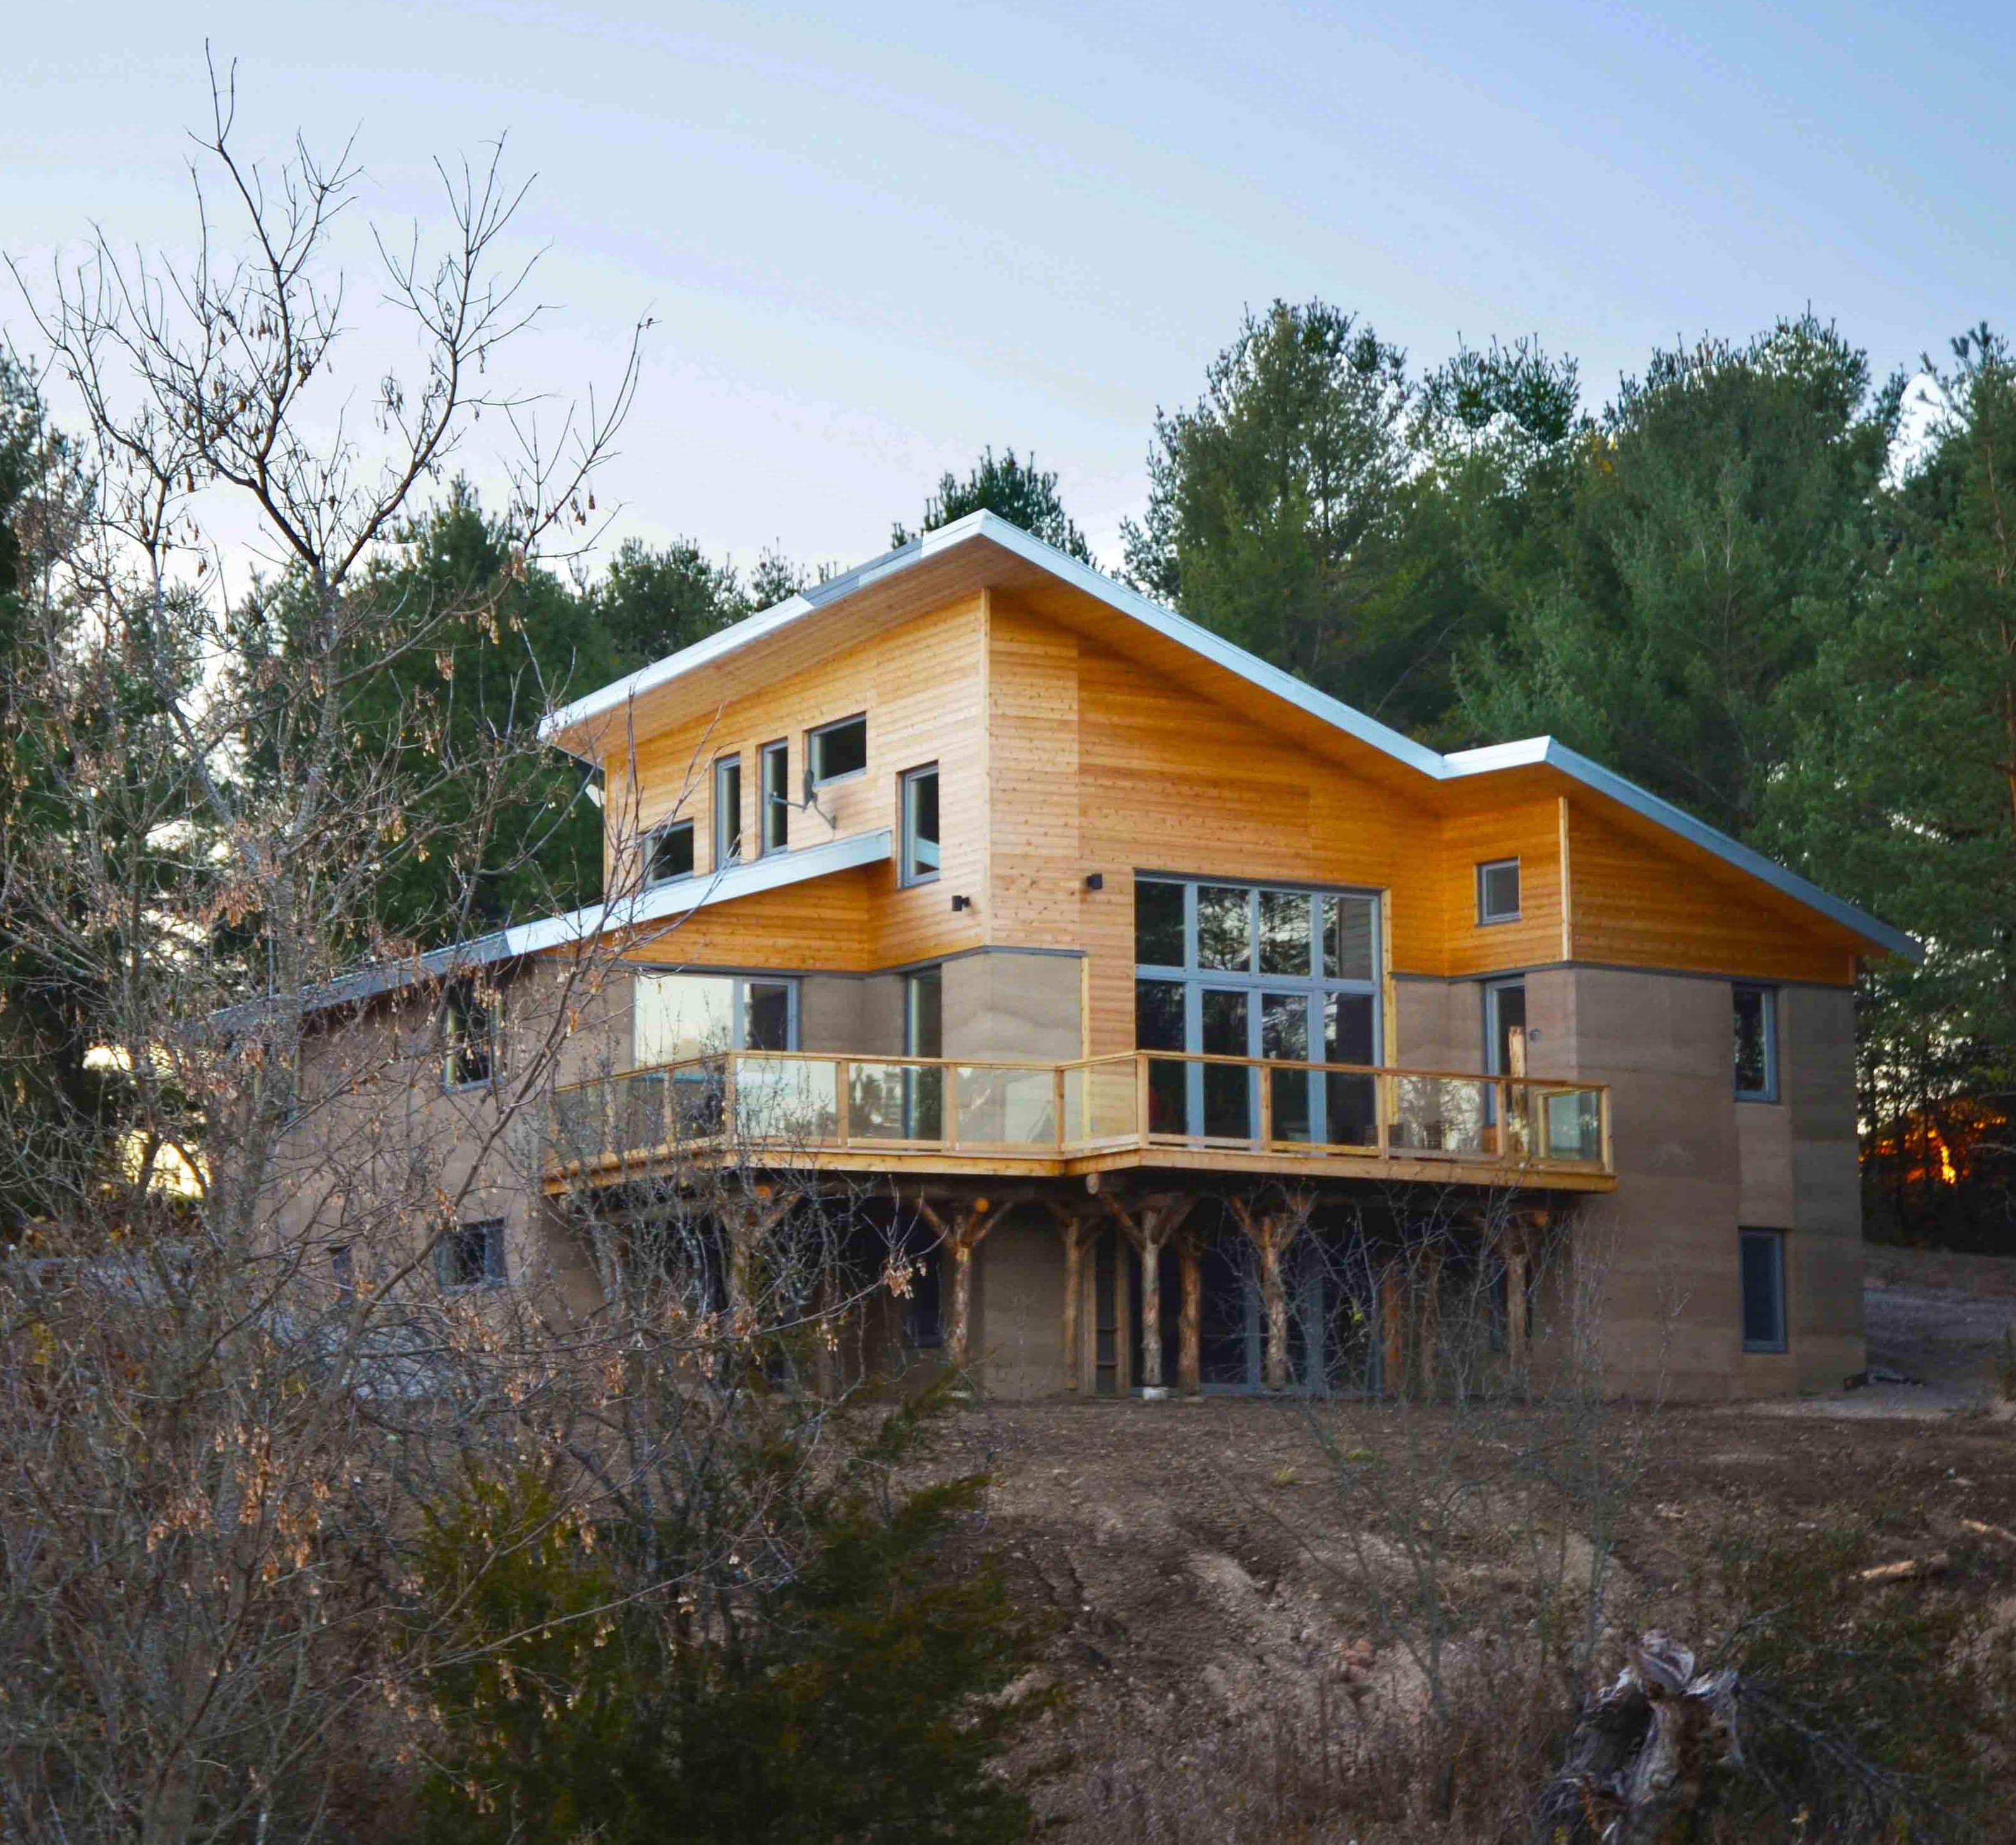 Insulated Rammed Earth  Beautiful Natural and Functional by Steven Gray  Greening Homes